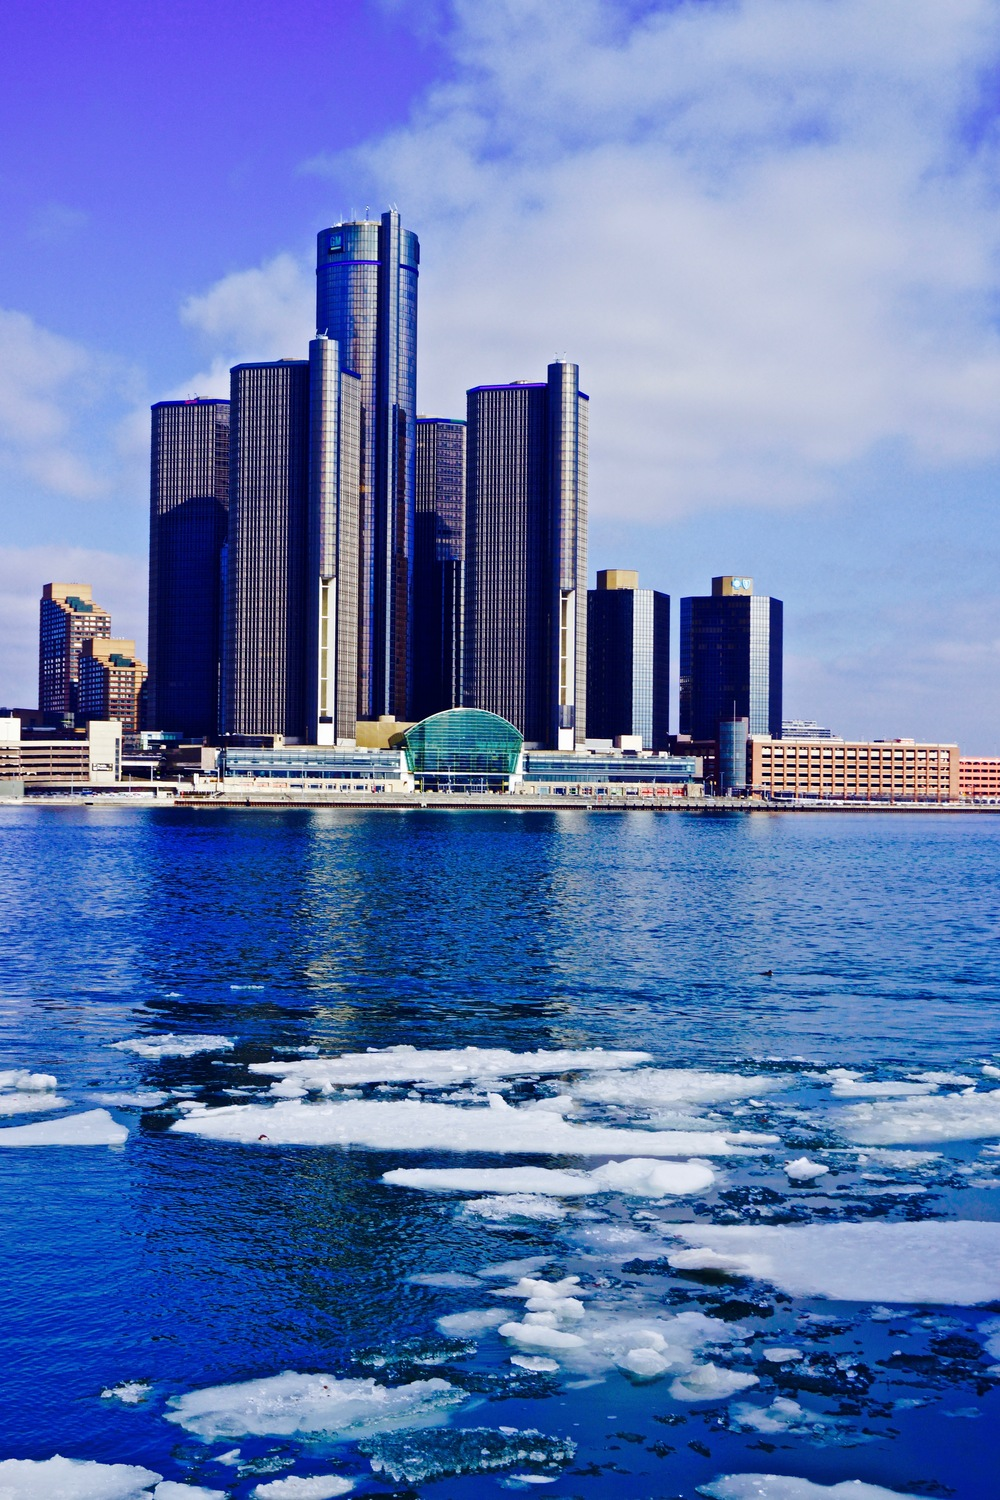 Detroit, Michigan, March 2015